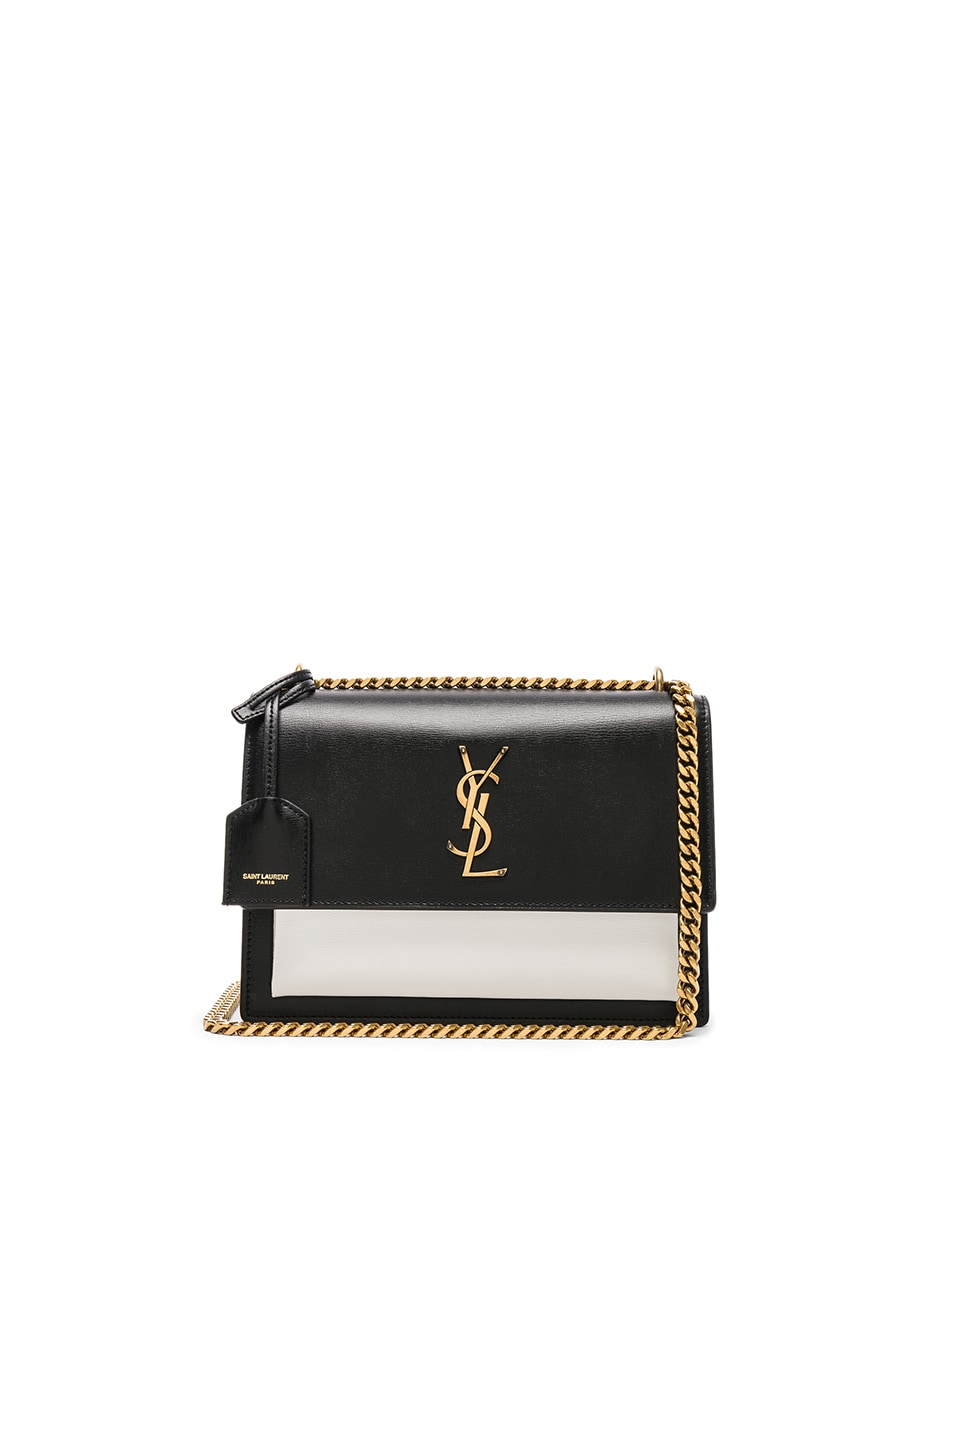 219dec77b0f Image 1 of Saint Laurent Medium Colorblock Leather Sunset Chain Bag in Black  & Pearl White